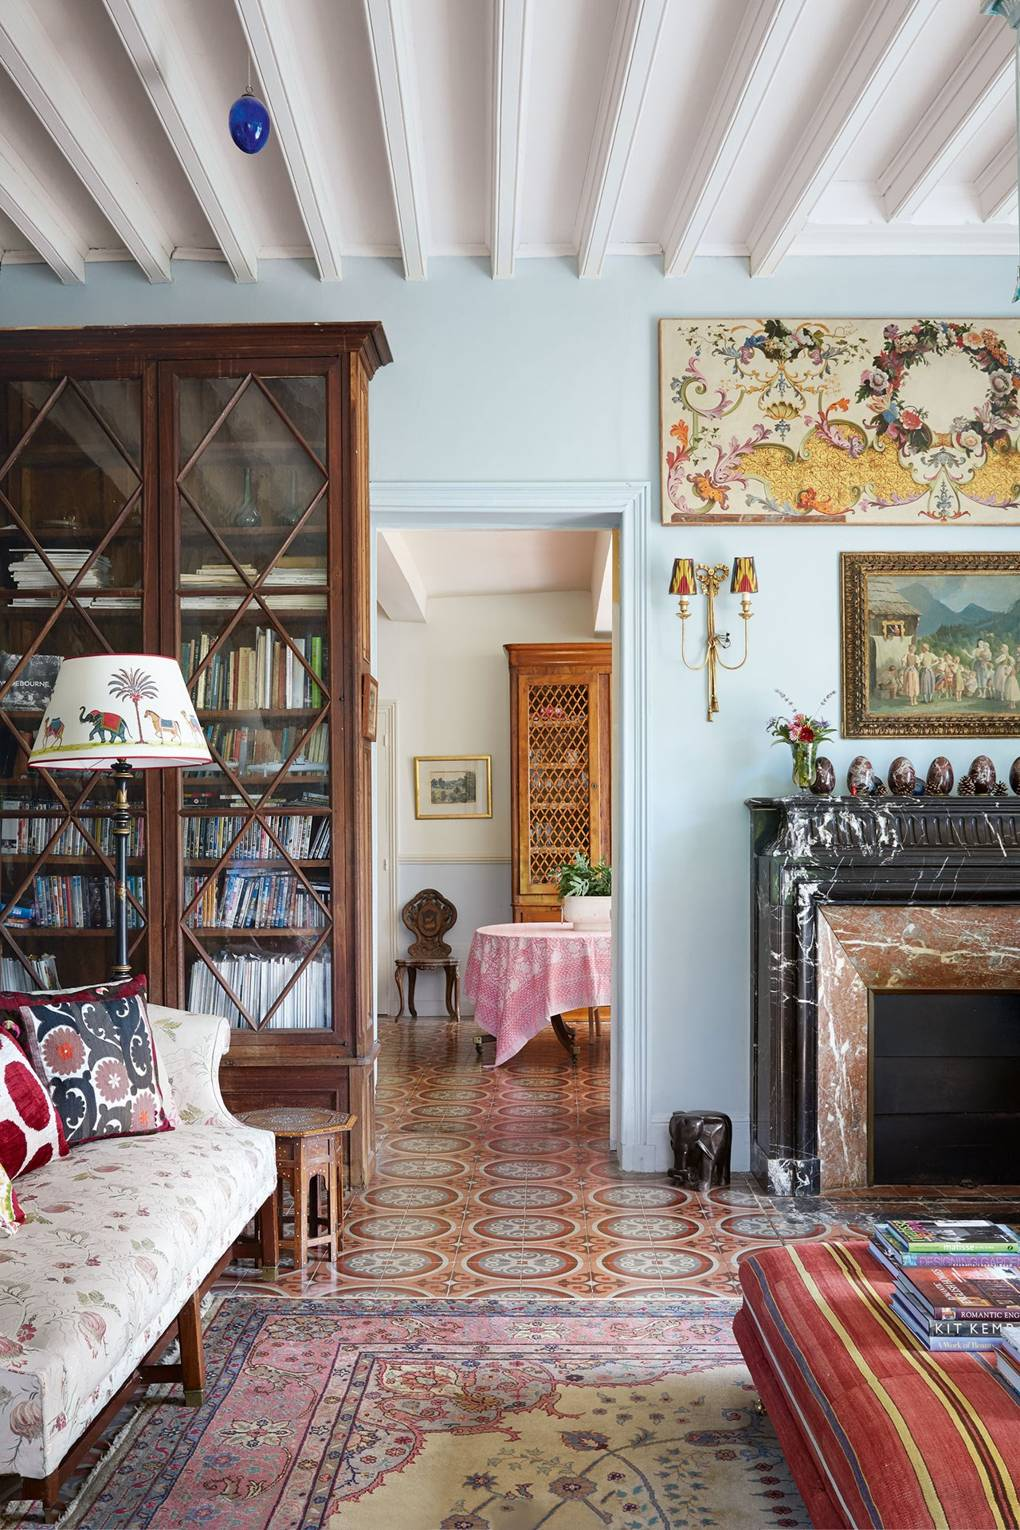 Country living room ideas | House & Garden on early 20th century english homes, 19th century scotland homes, 19th century norwegian homes, 19th century spanish homes, 19th century colonial homes, 19th century danish homes, 19th century china homes, 19th century french homes, 19th century chinese homes, 19th century southern homes, carriage house homes, 19th century american homes, 19th century dinner party,